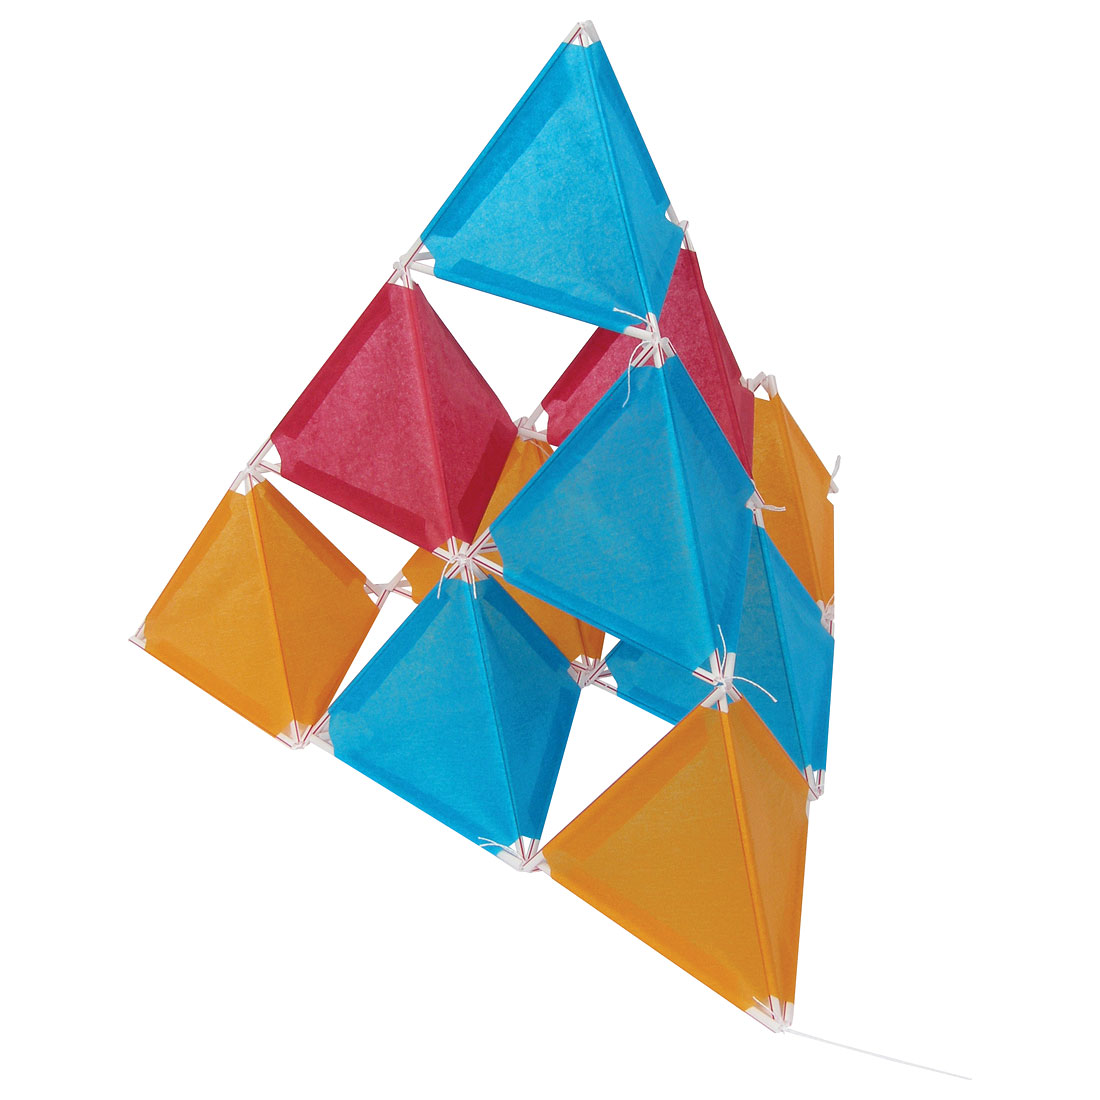 10 cell kazoon kite for Tetrahedron kite template